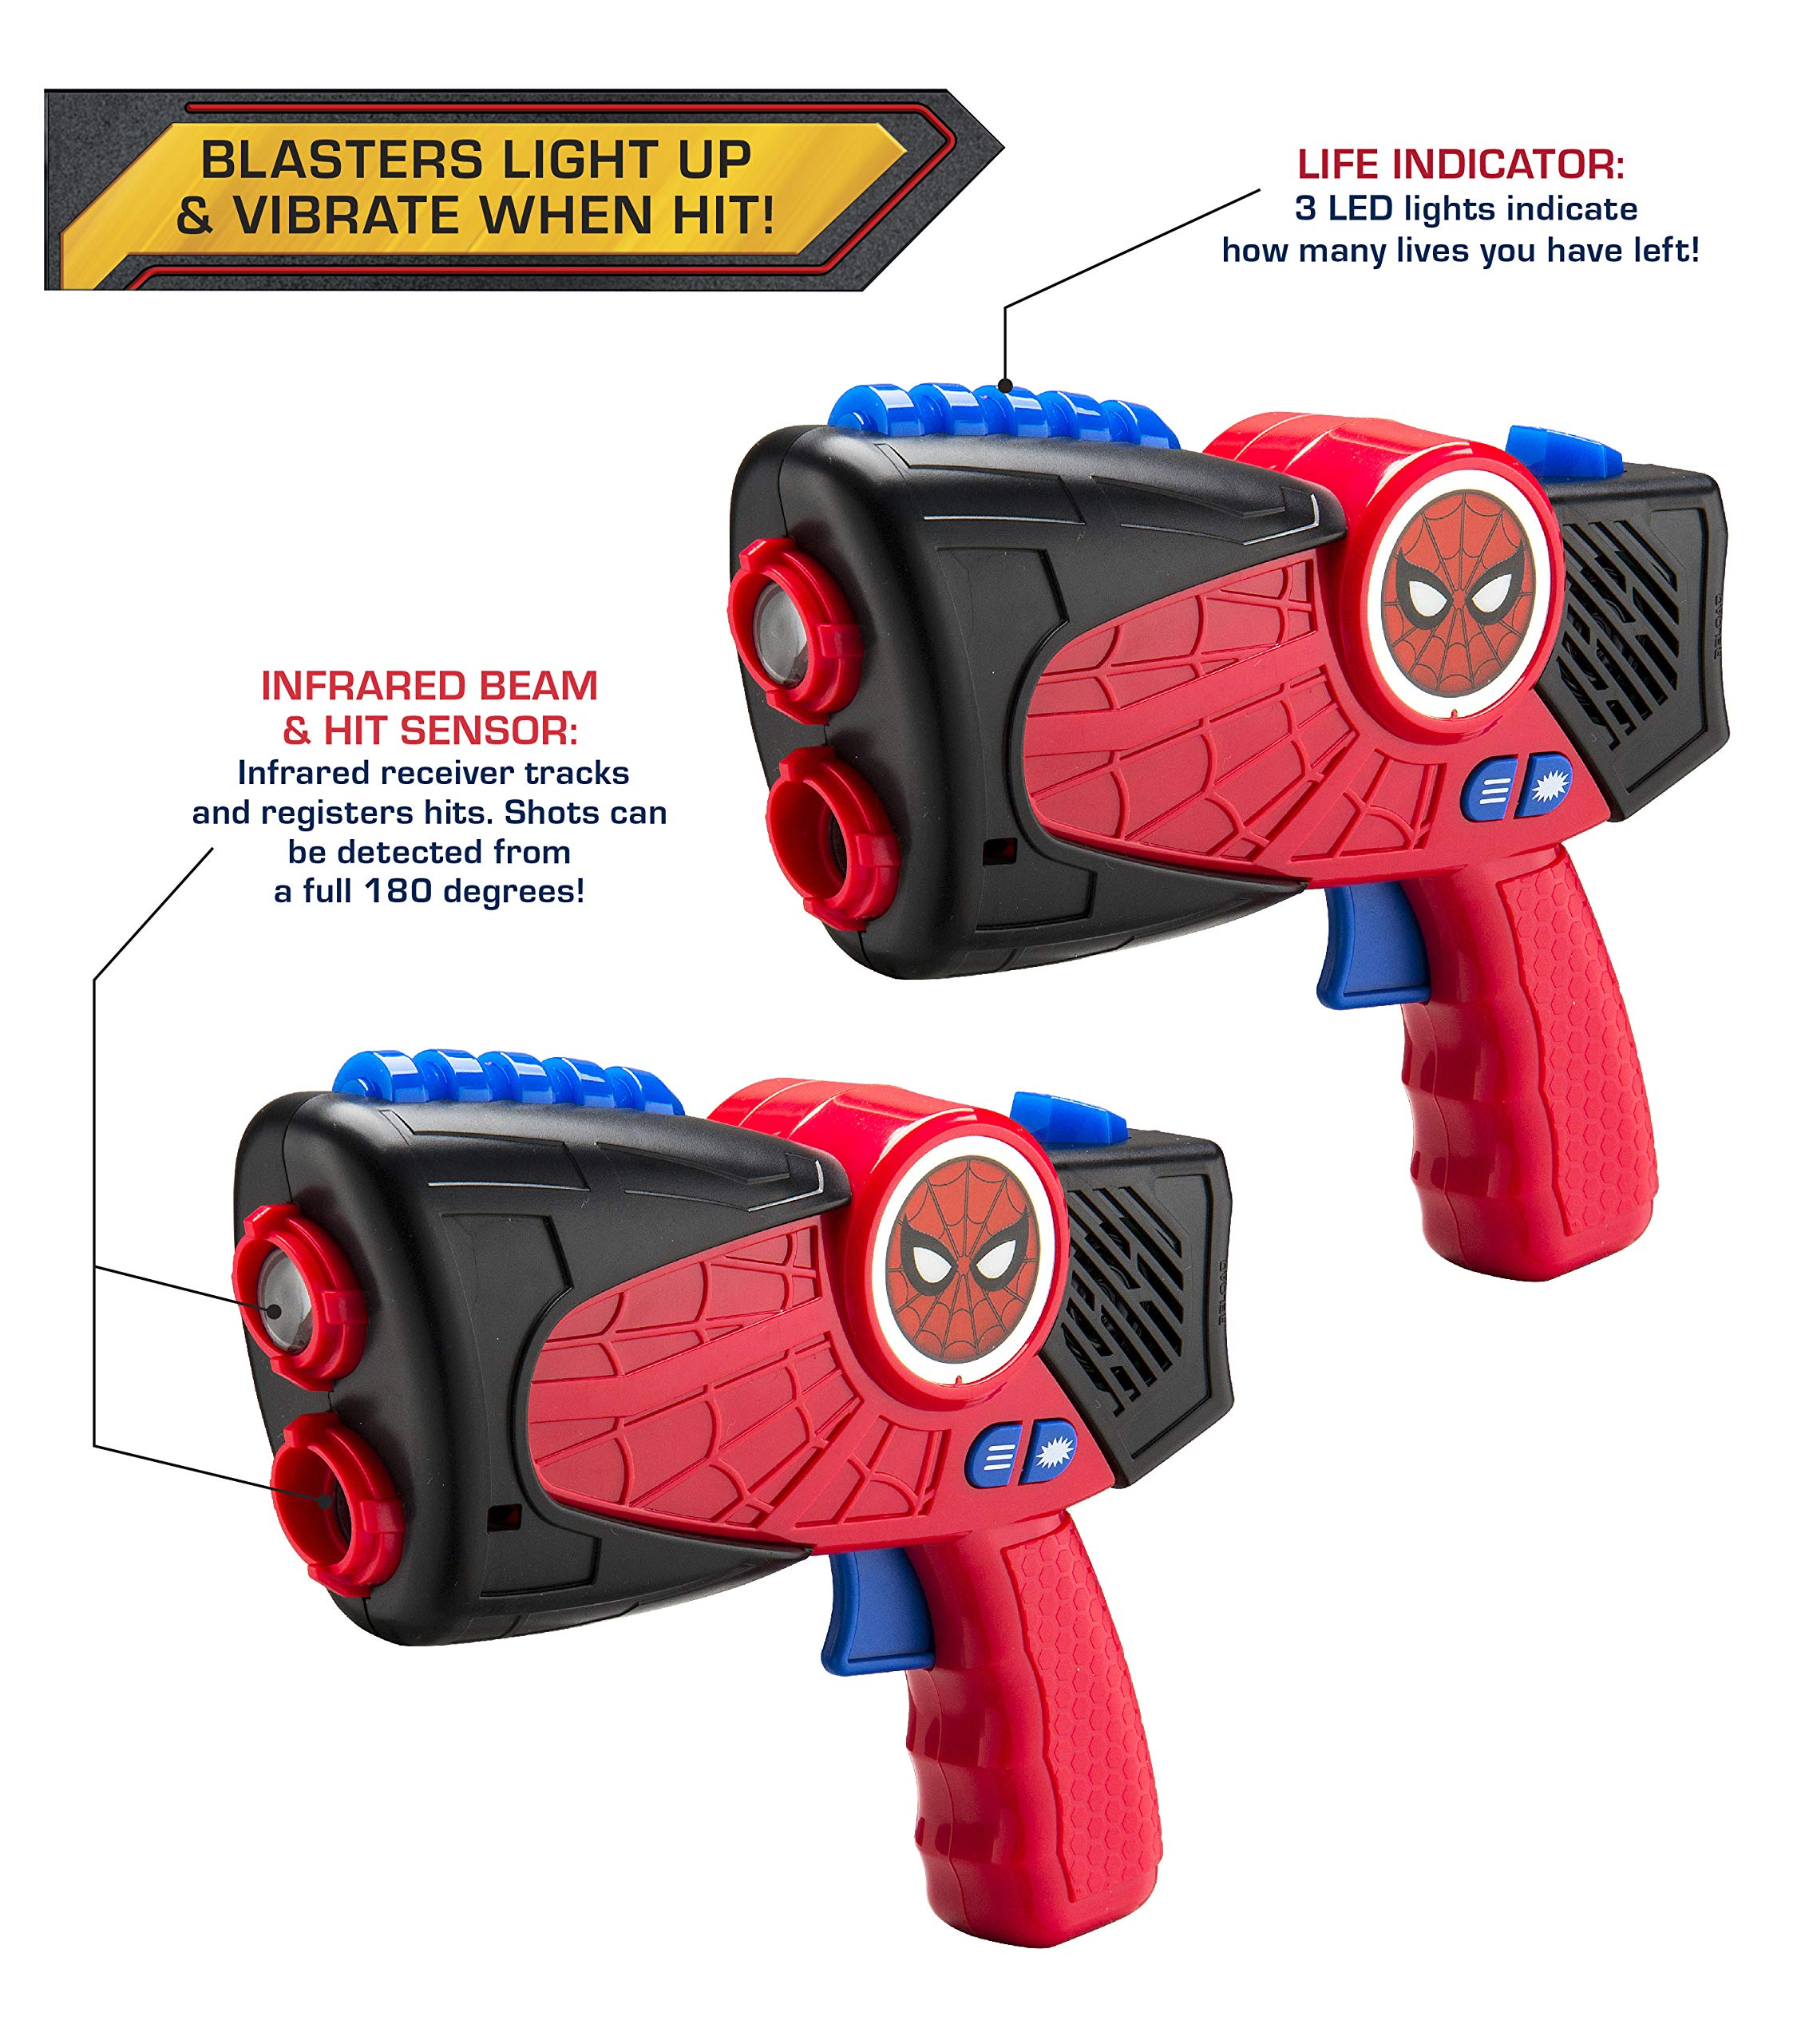 Spiderman Far from Home Laser-Tag for Kids Infared Lazer-Tag Blasters Lights Up & Vibrates When Hit by eKids (Image #2)